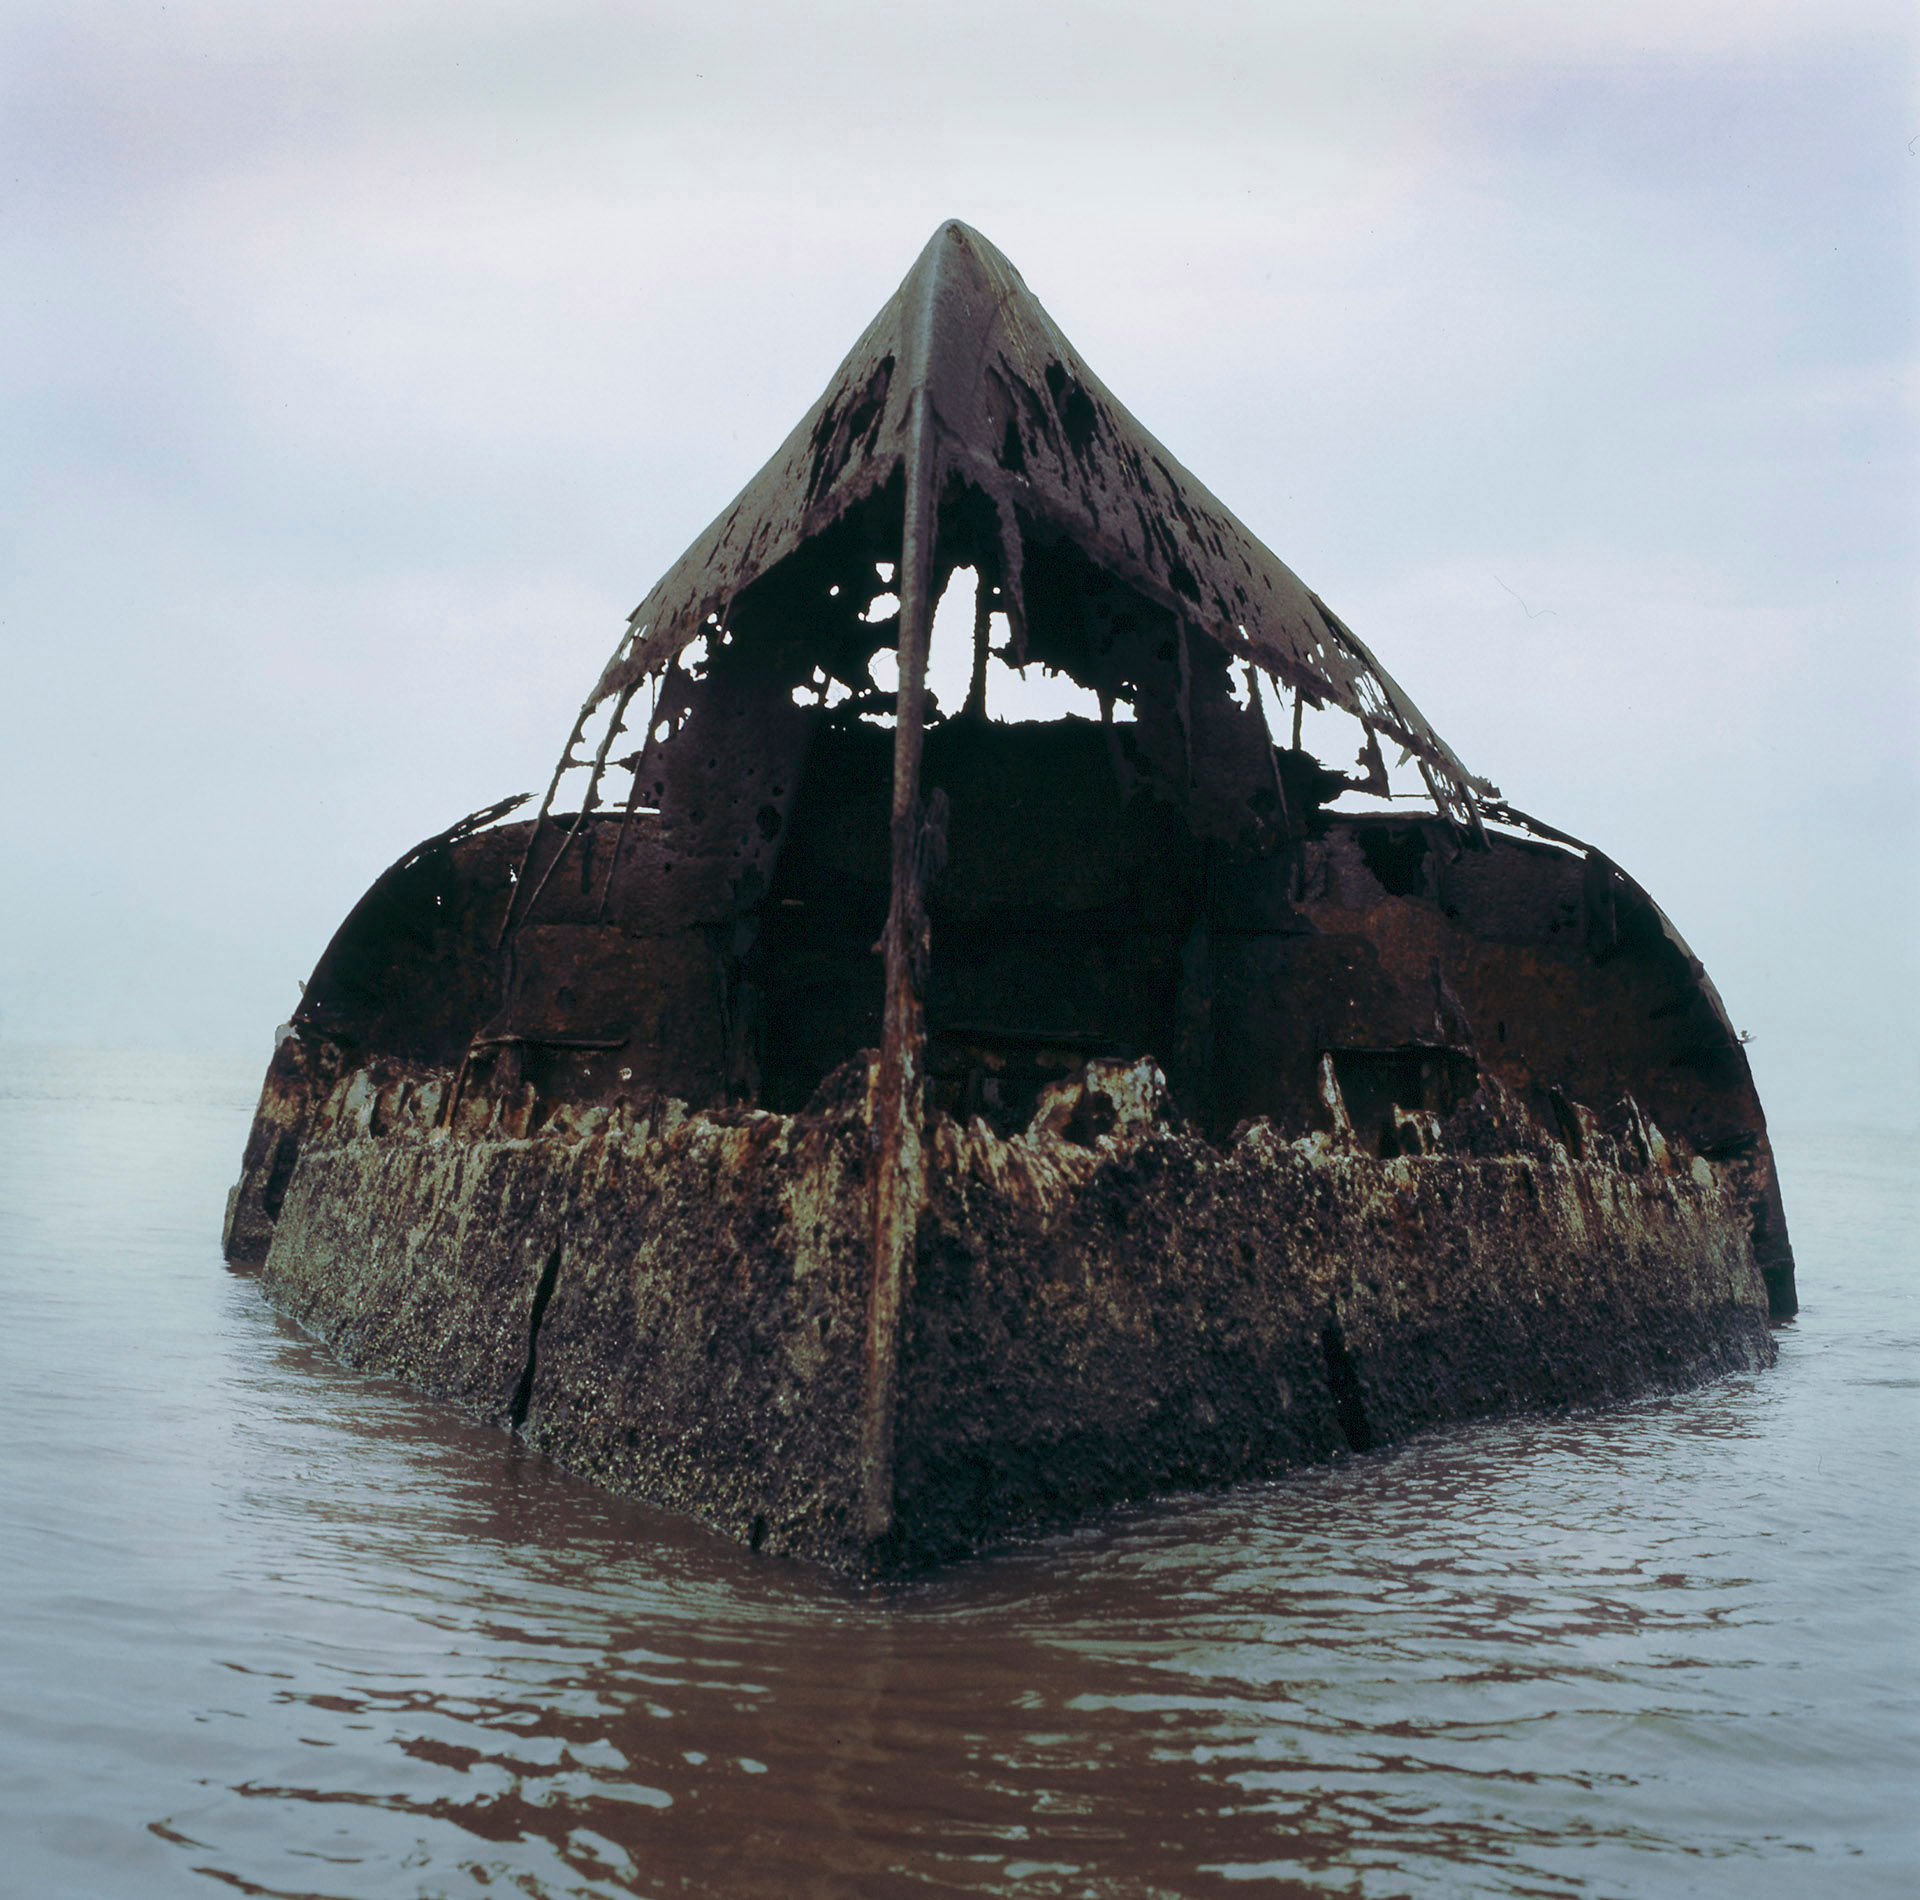 Capsized Hull #1, Lagos